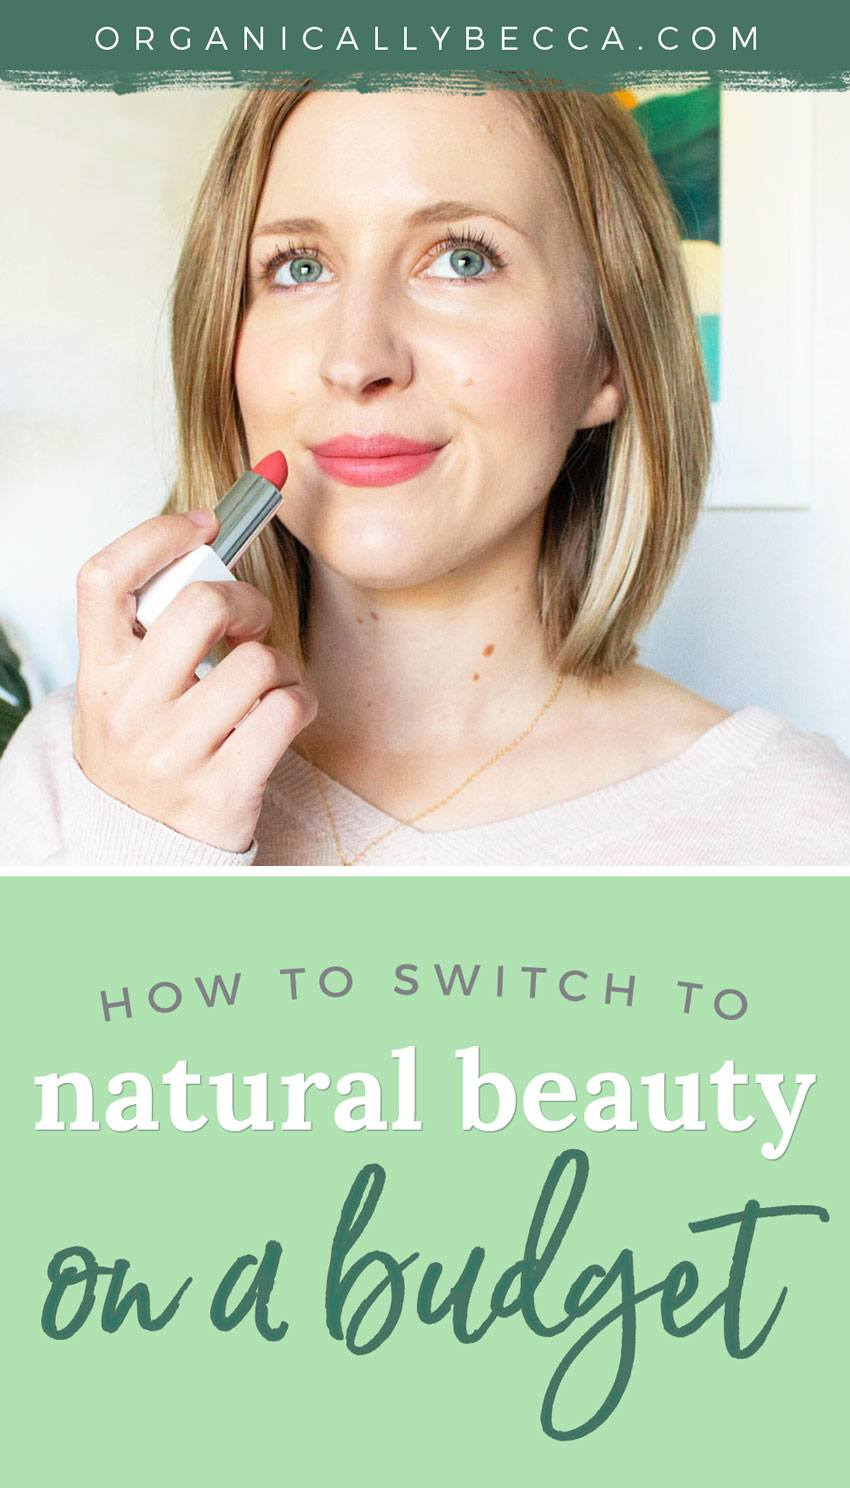 How to Switch to Natural Beauty on a Budget